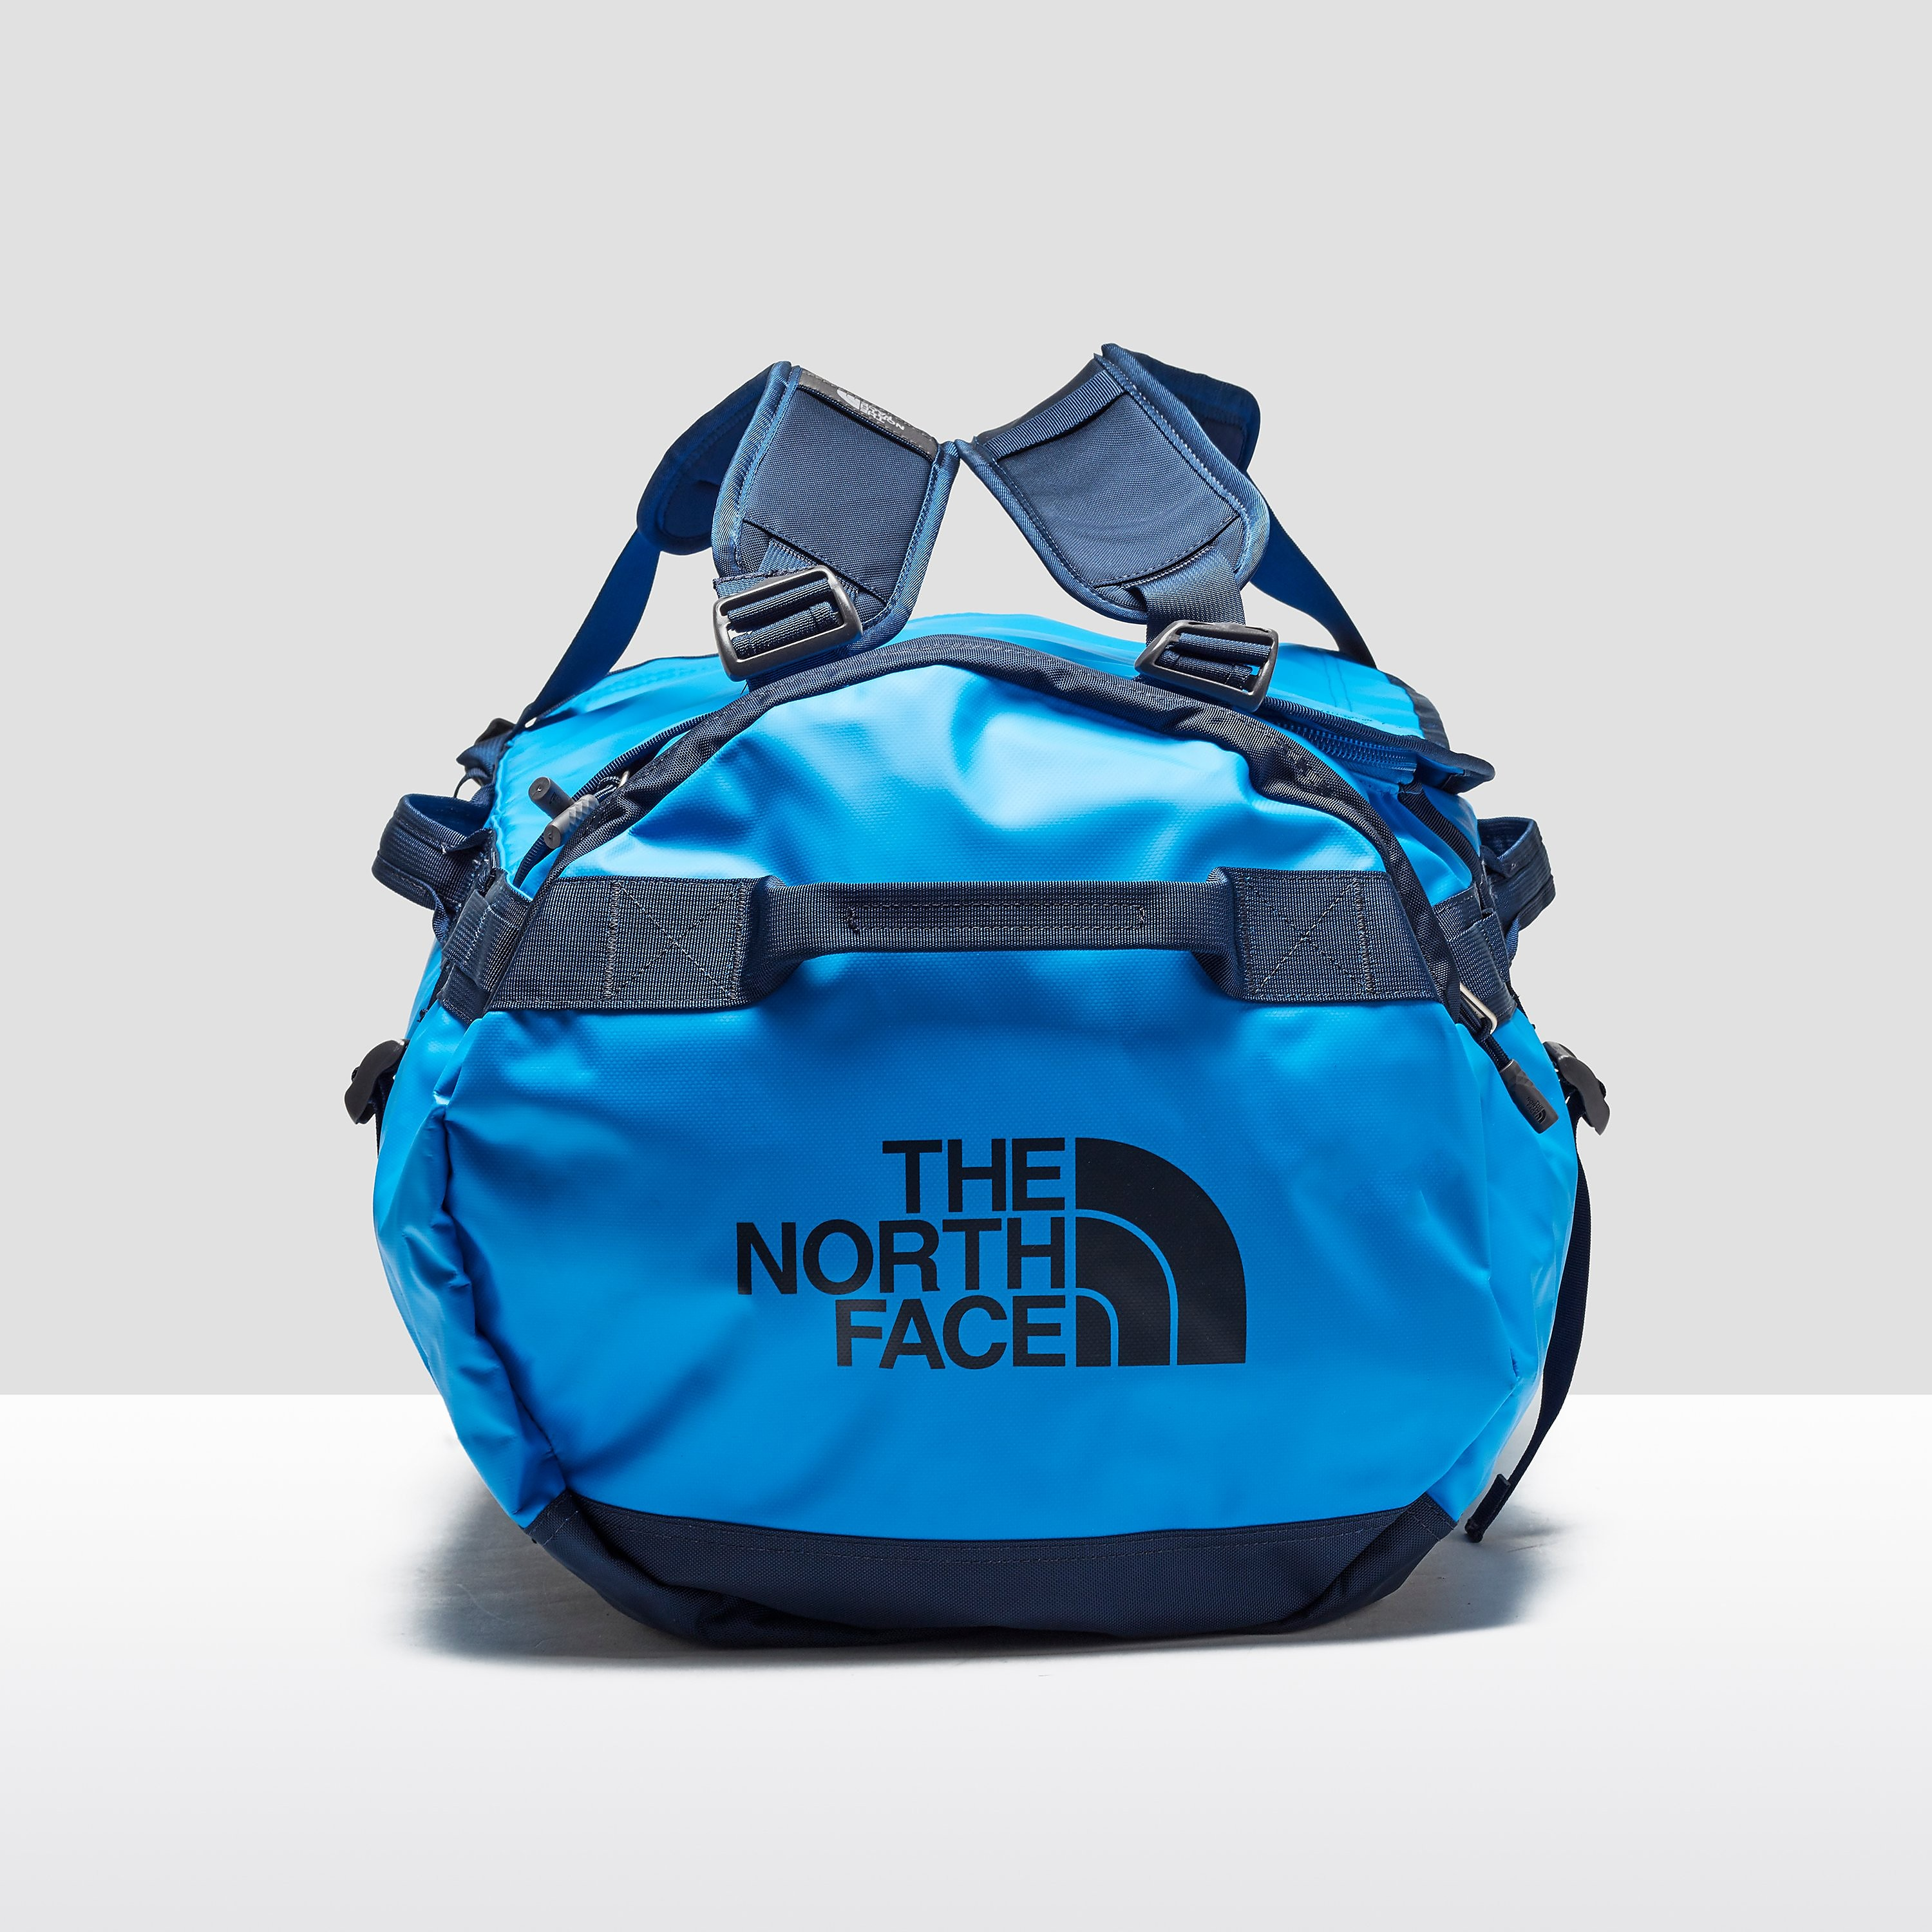 The North Face Basecamp DUFFEL LARGE